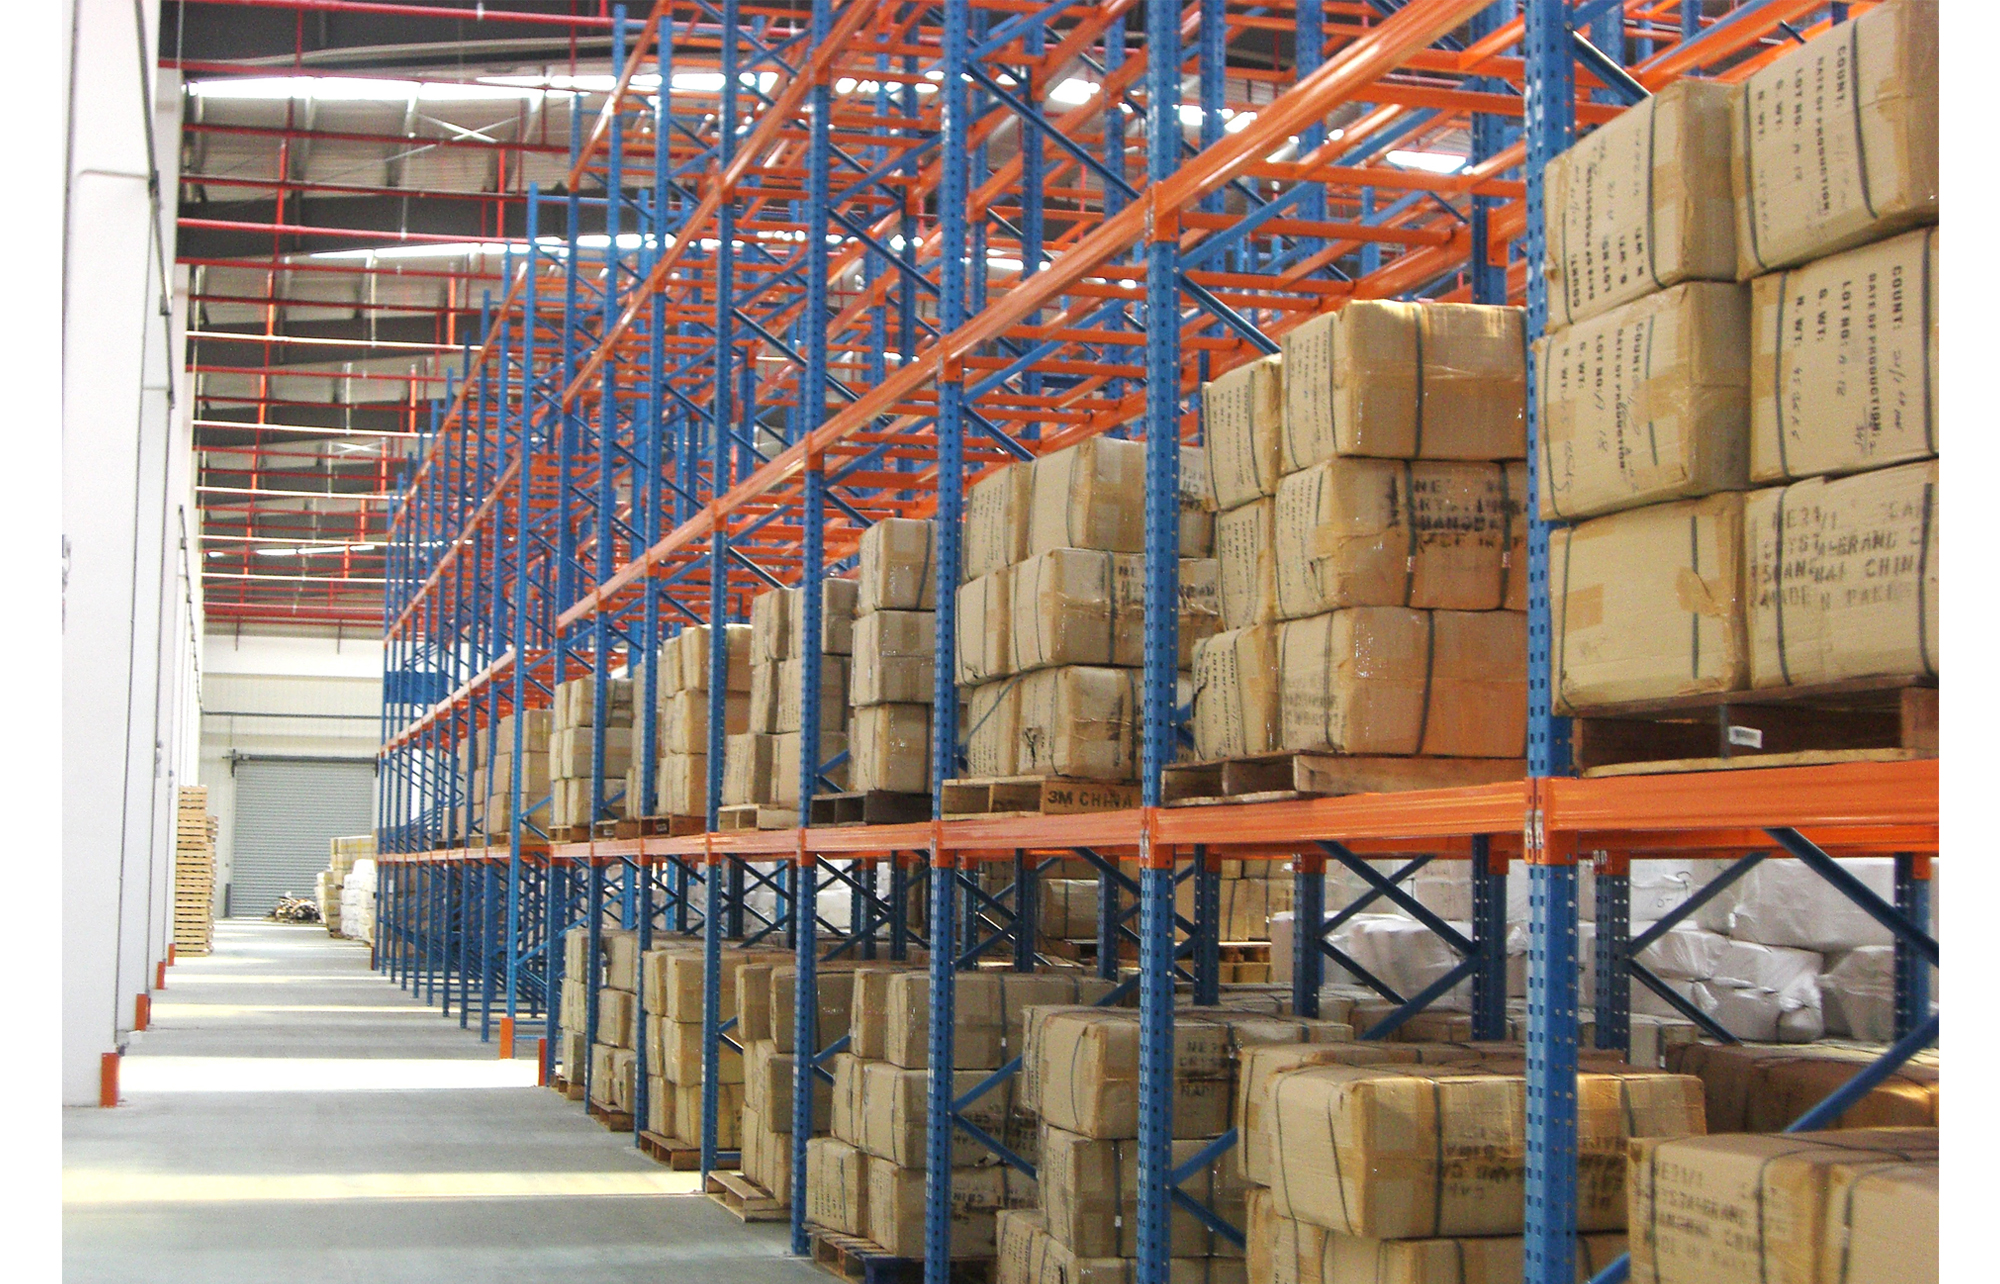 The Used Racking Company - Storage Solutions, for when price